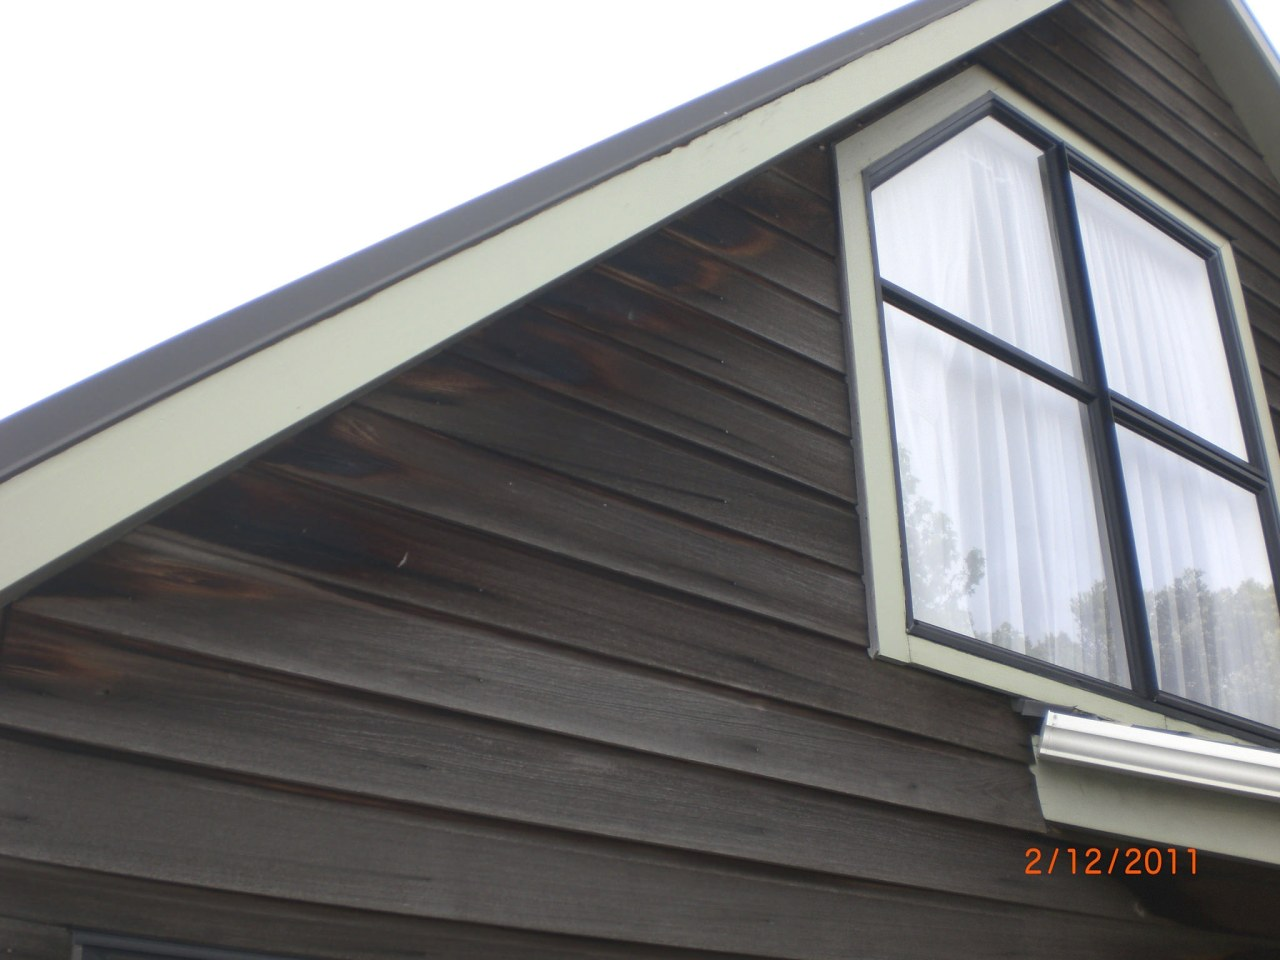 Resene Waterborne Woodsman was used on this daylighting, facade, home, roof, siding, window, black, white